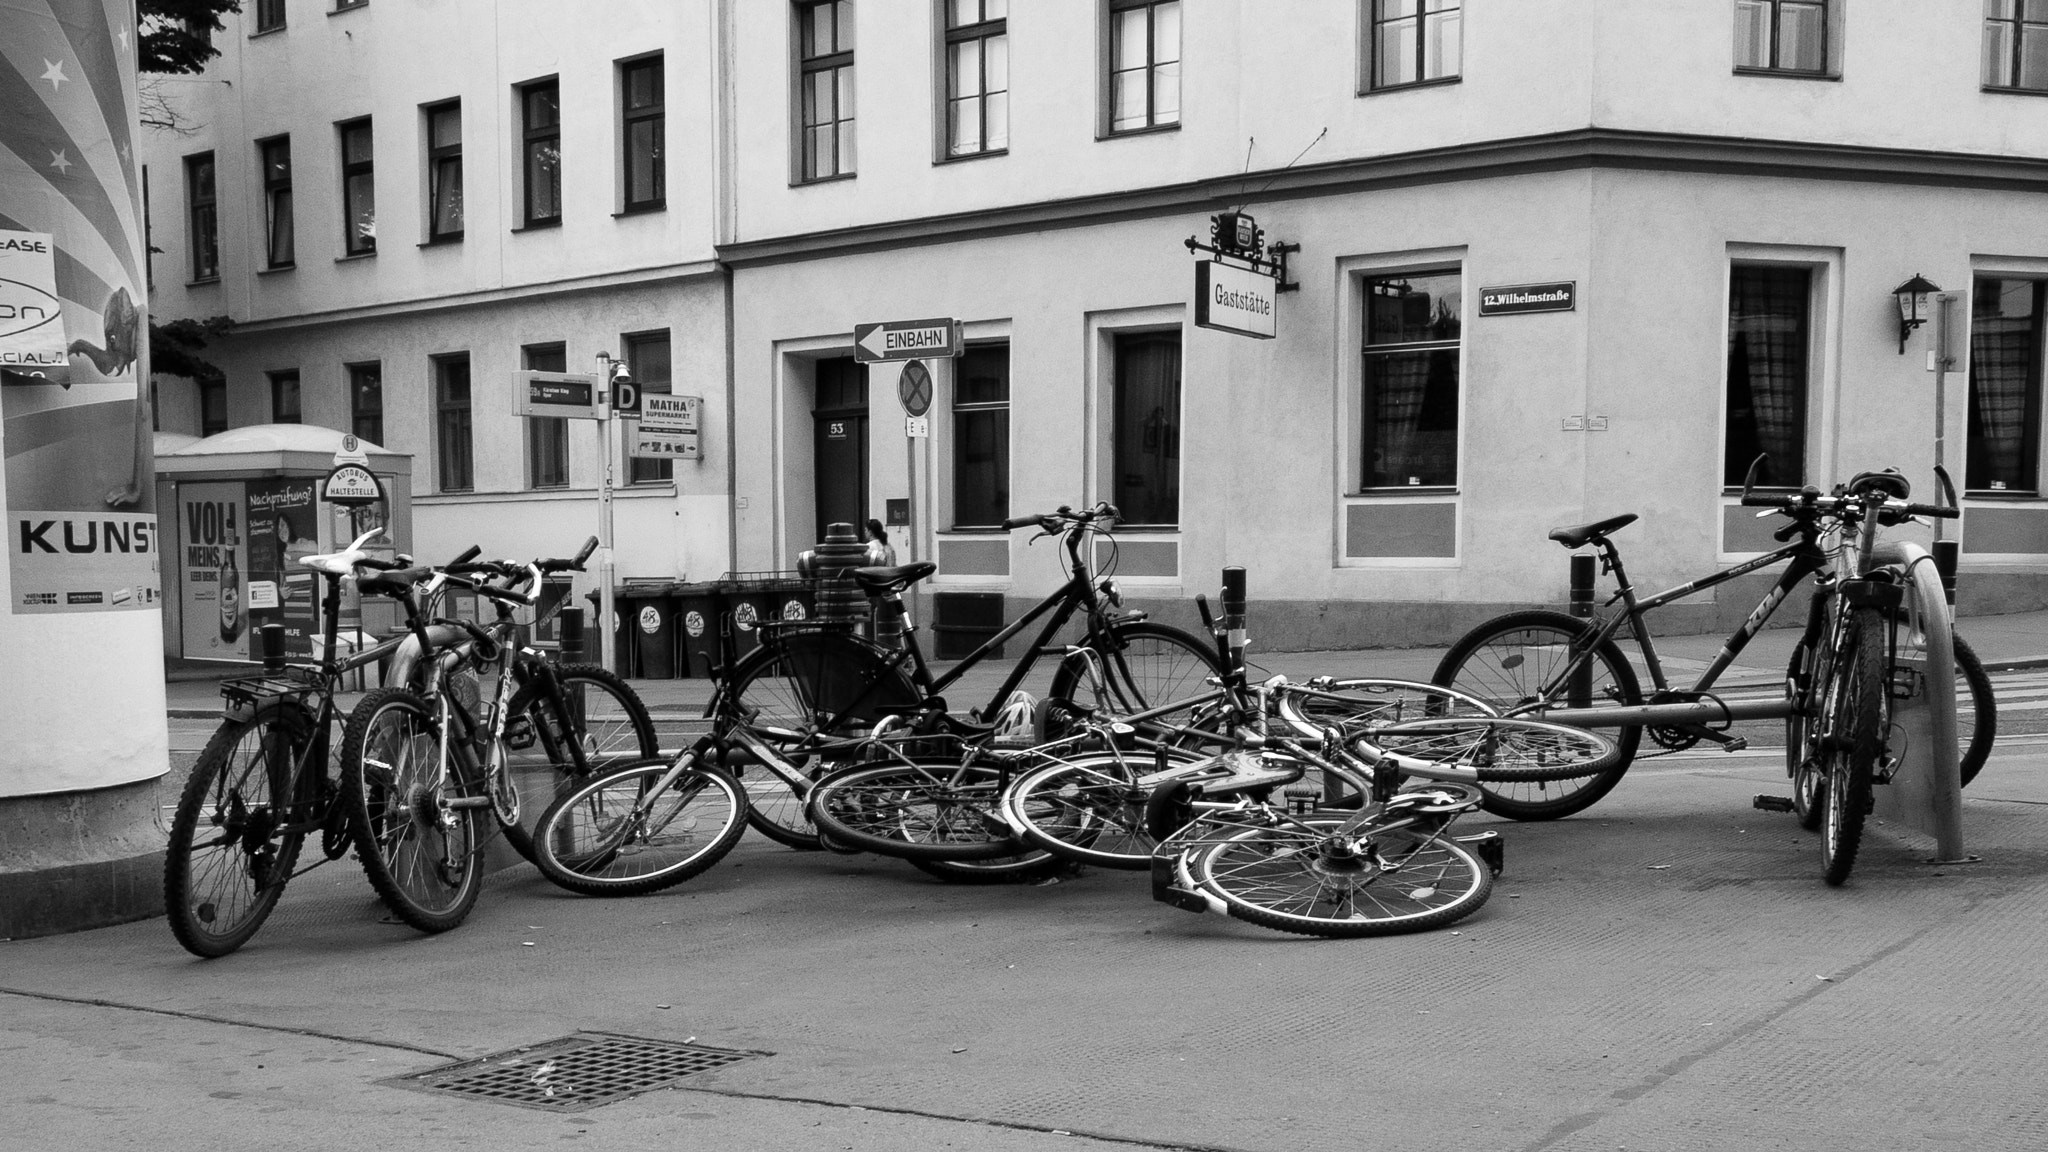 Photograph even bikes are still sleeping at 7am by Csaba Böhm on 500px